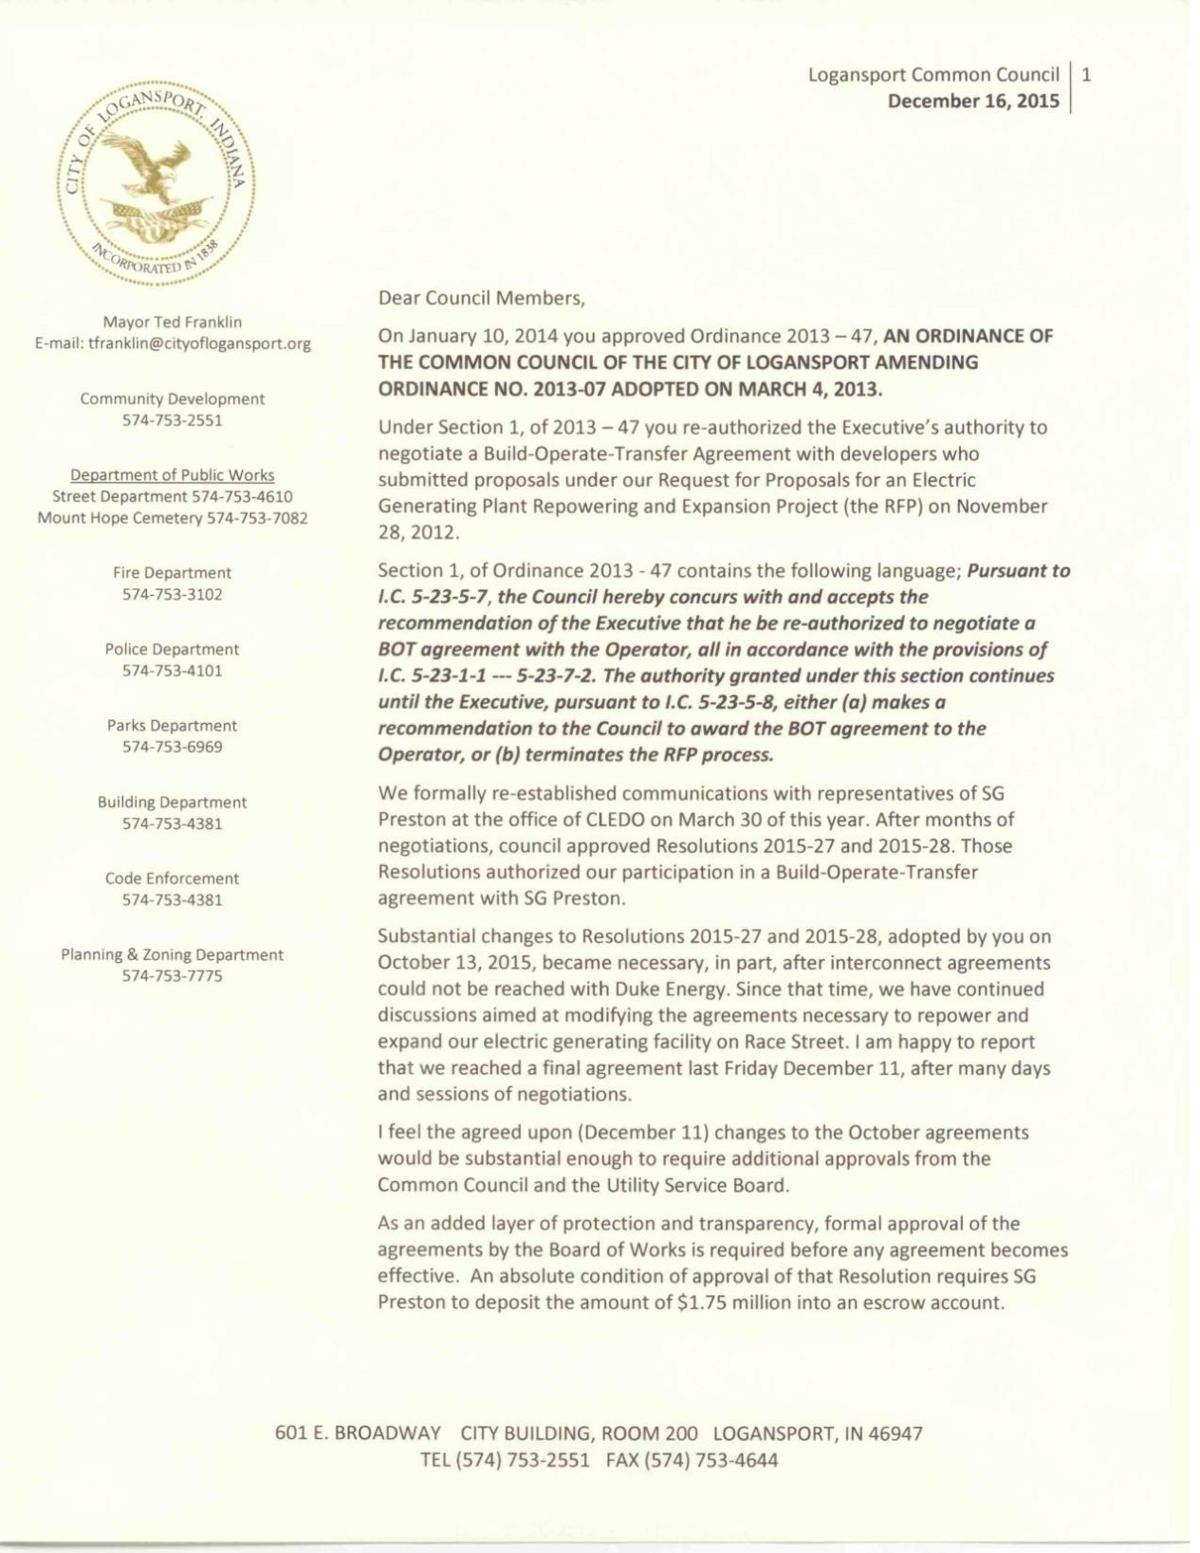 Franklin's letter to council